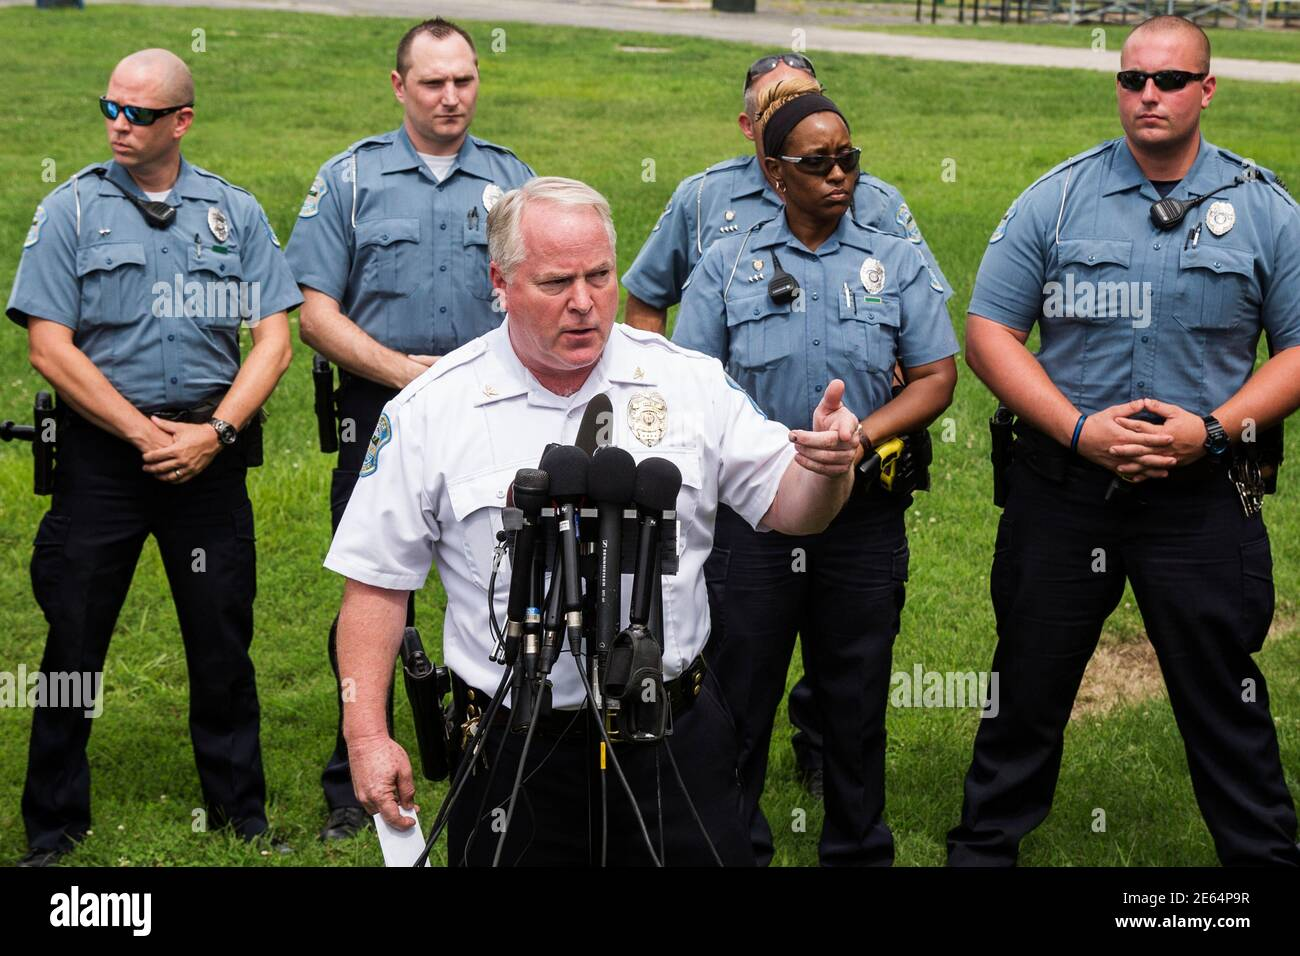 Ferguson Police Chief Thomas Jackson answers questions from the media about his office's handling of the release of information following the shooting of Michael Brown in Ferguson, Missouri August 15, 2014. Picture taken August 15, 2014. REUTERS/Lucas Jackson (UNITED STATES - Tags: CIVIL UNREST CRIME LAW POLITICS) Foto Stock